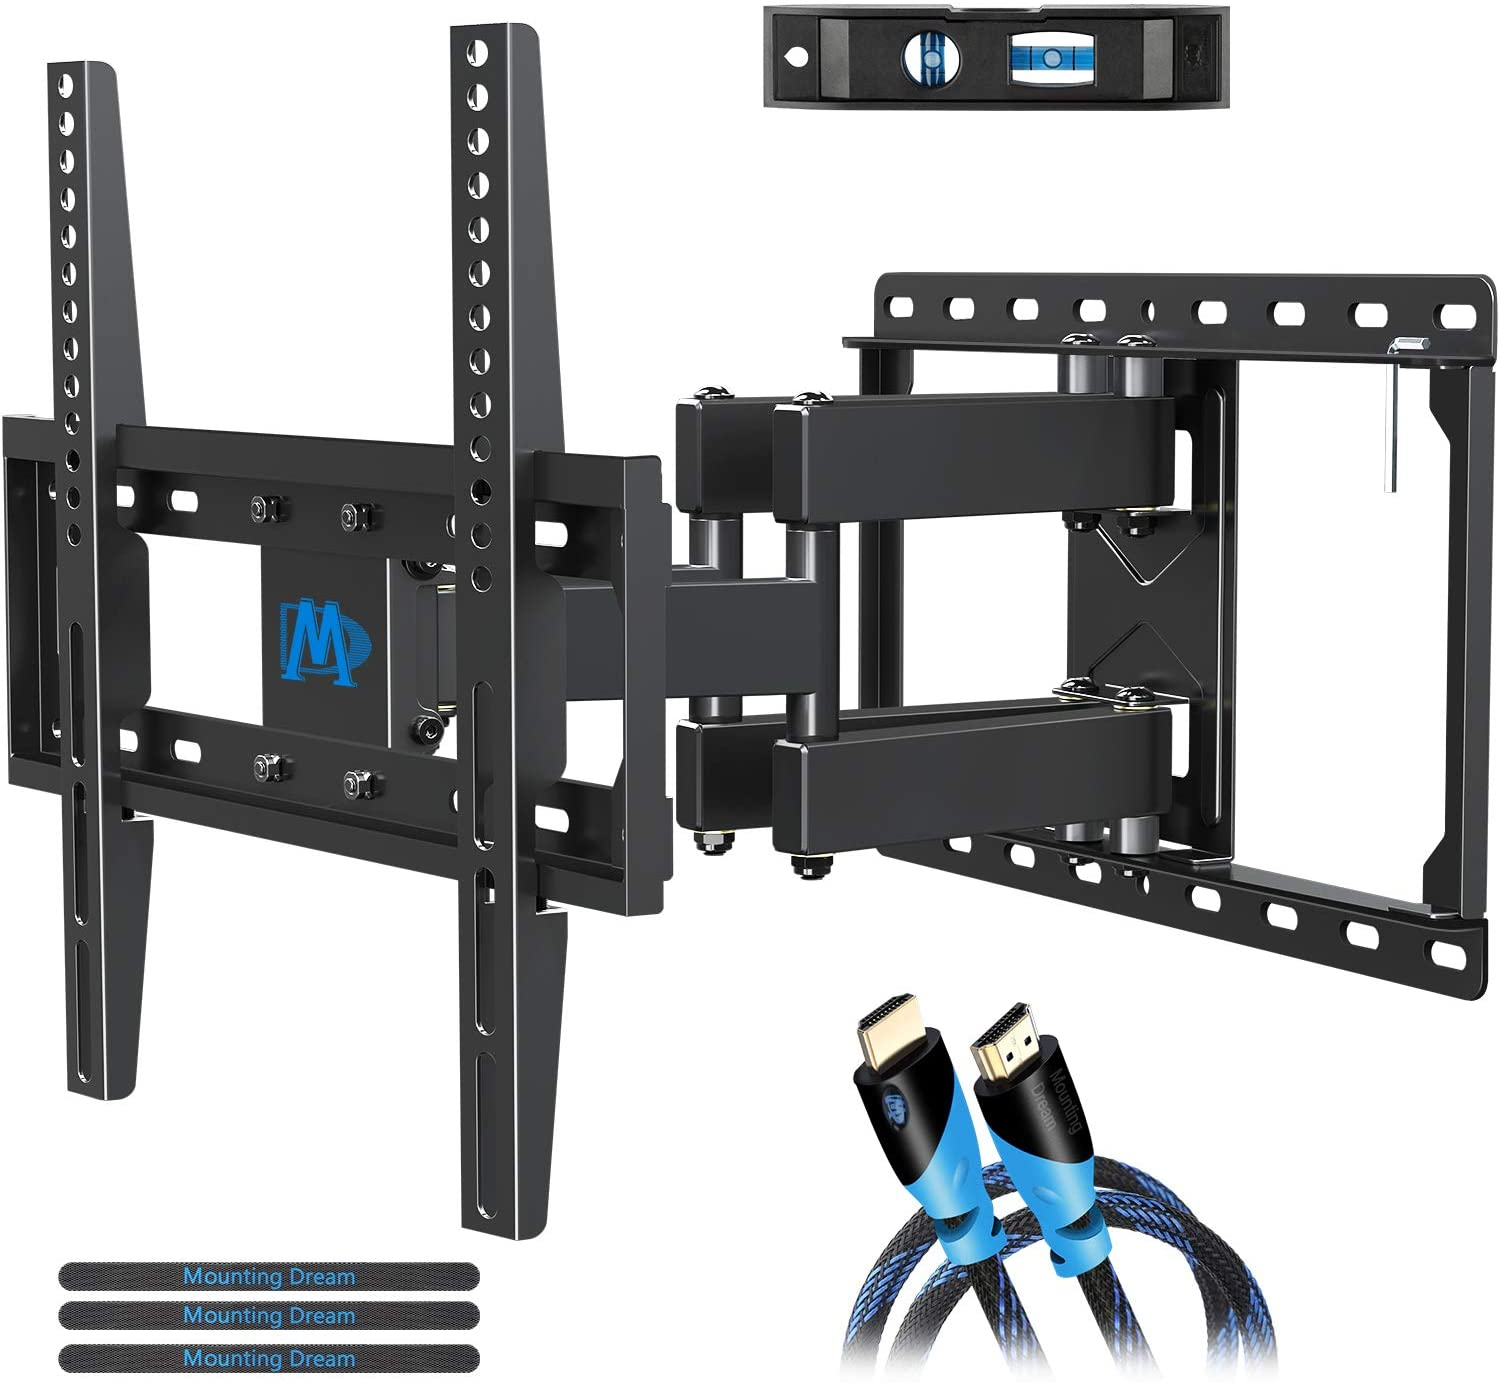 Mounting Dream UL Listed TV Mount TV Wall Mount